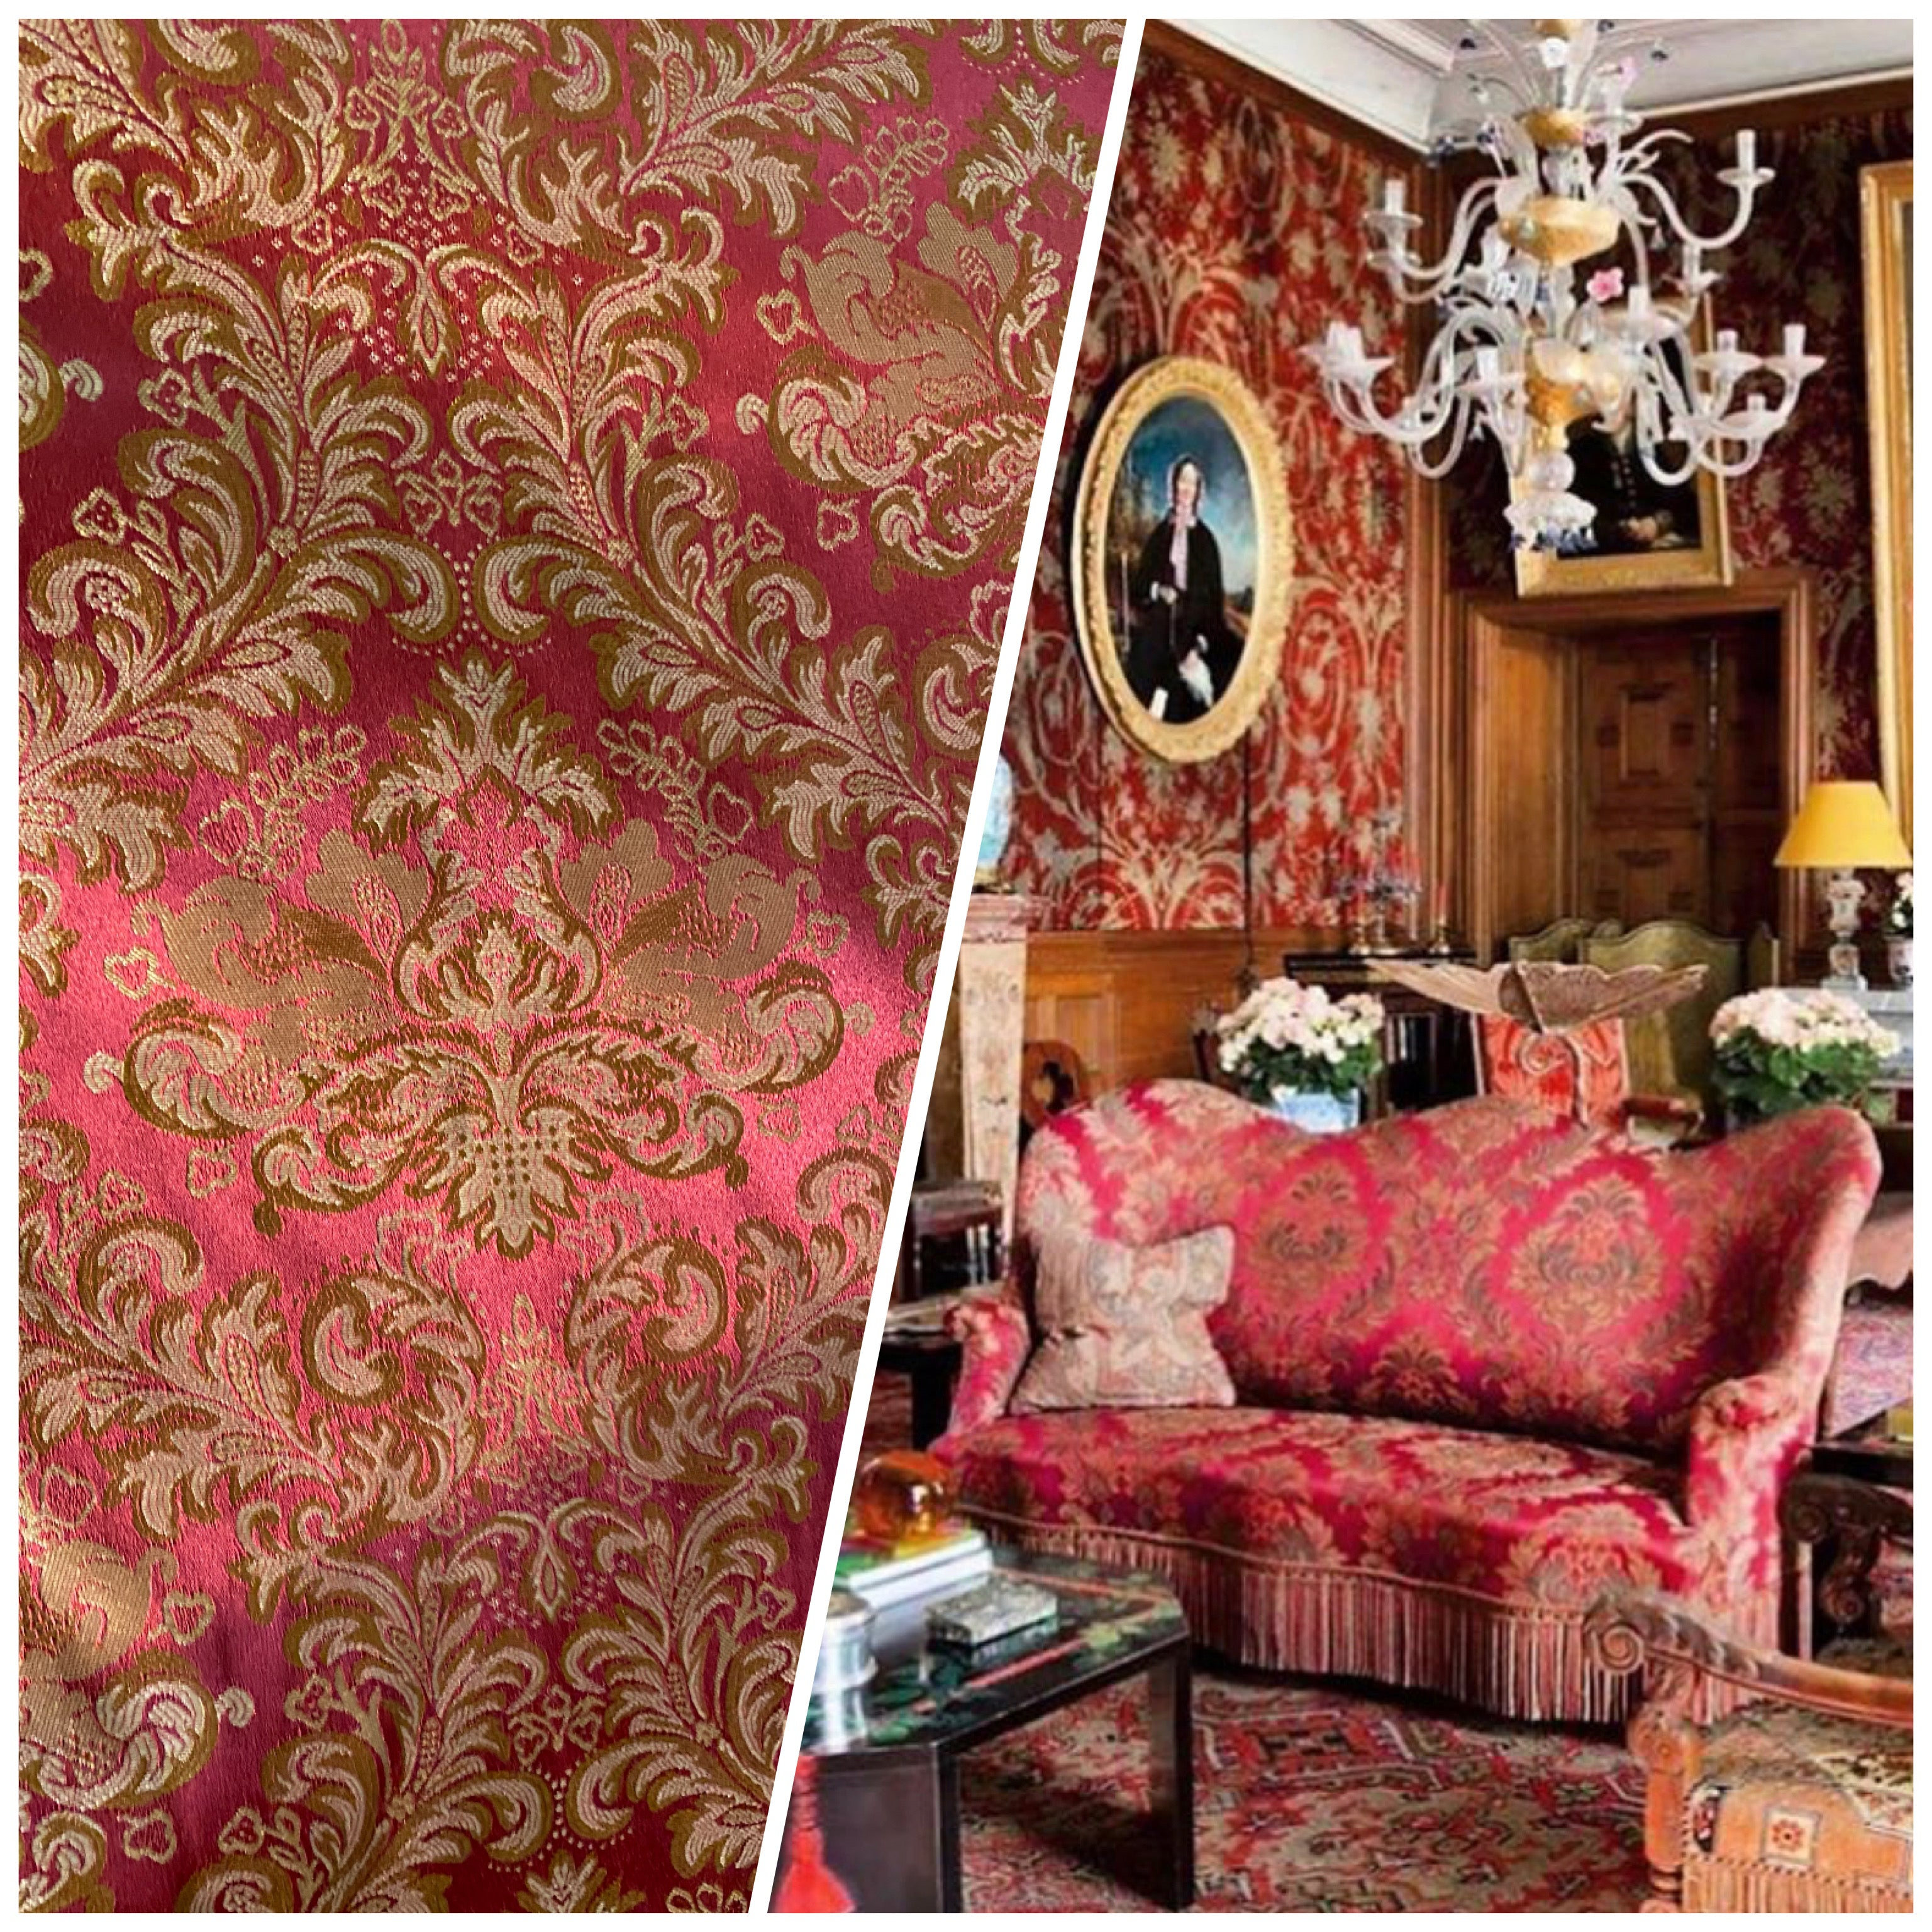 NEW Prince Liam Designer Damask Satin Drapery Upholstery Fabric - Red & Gold